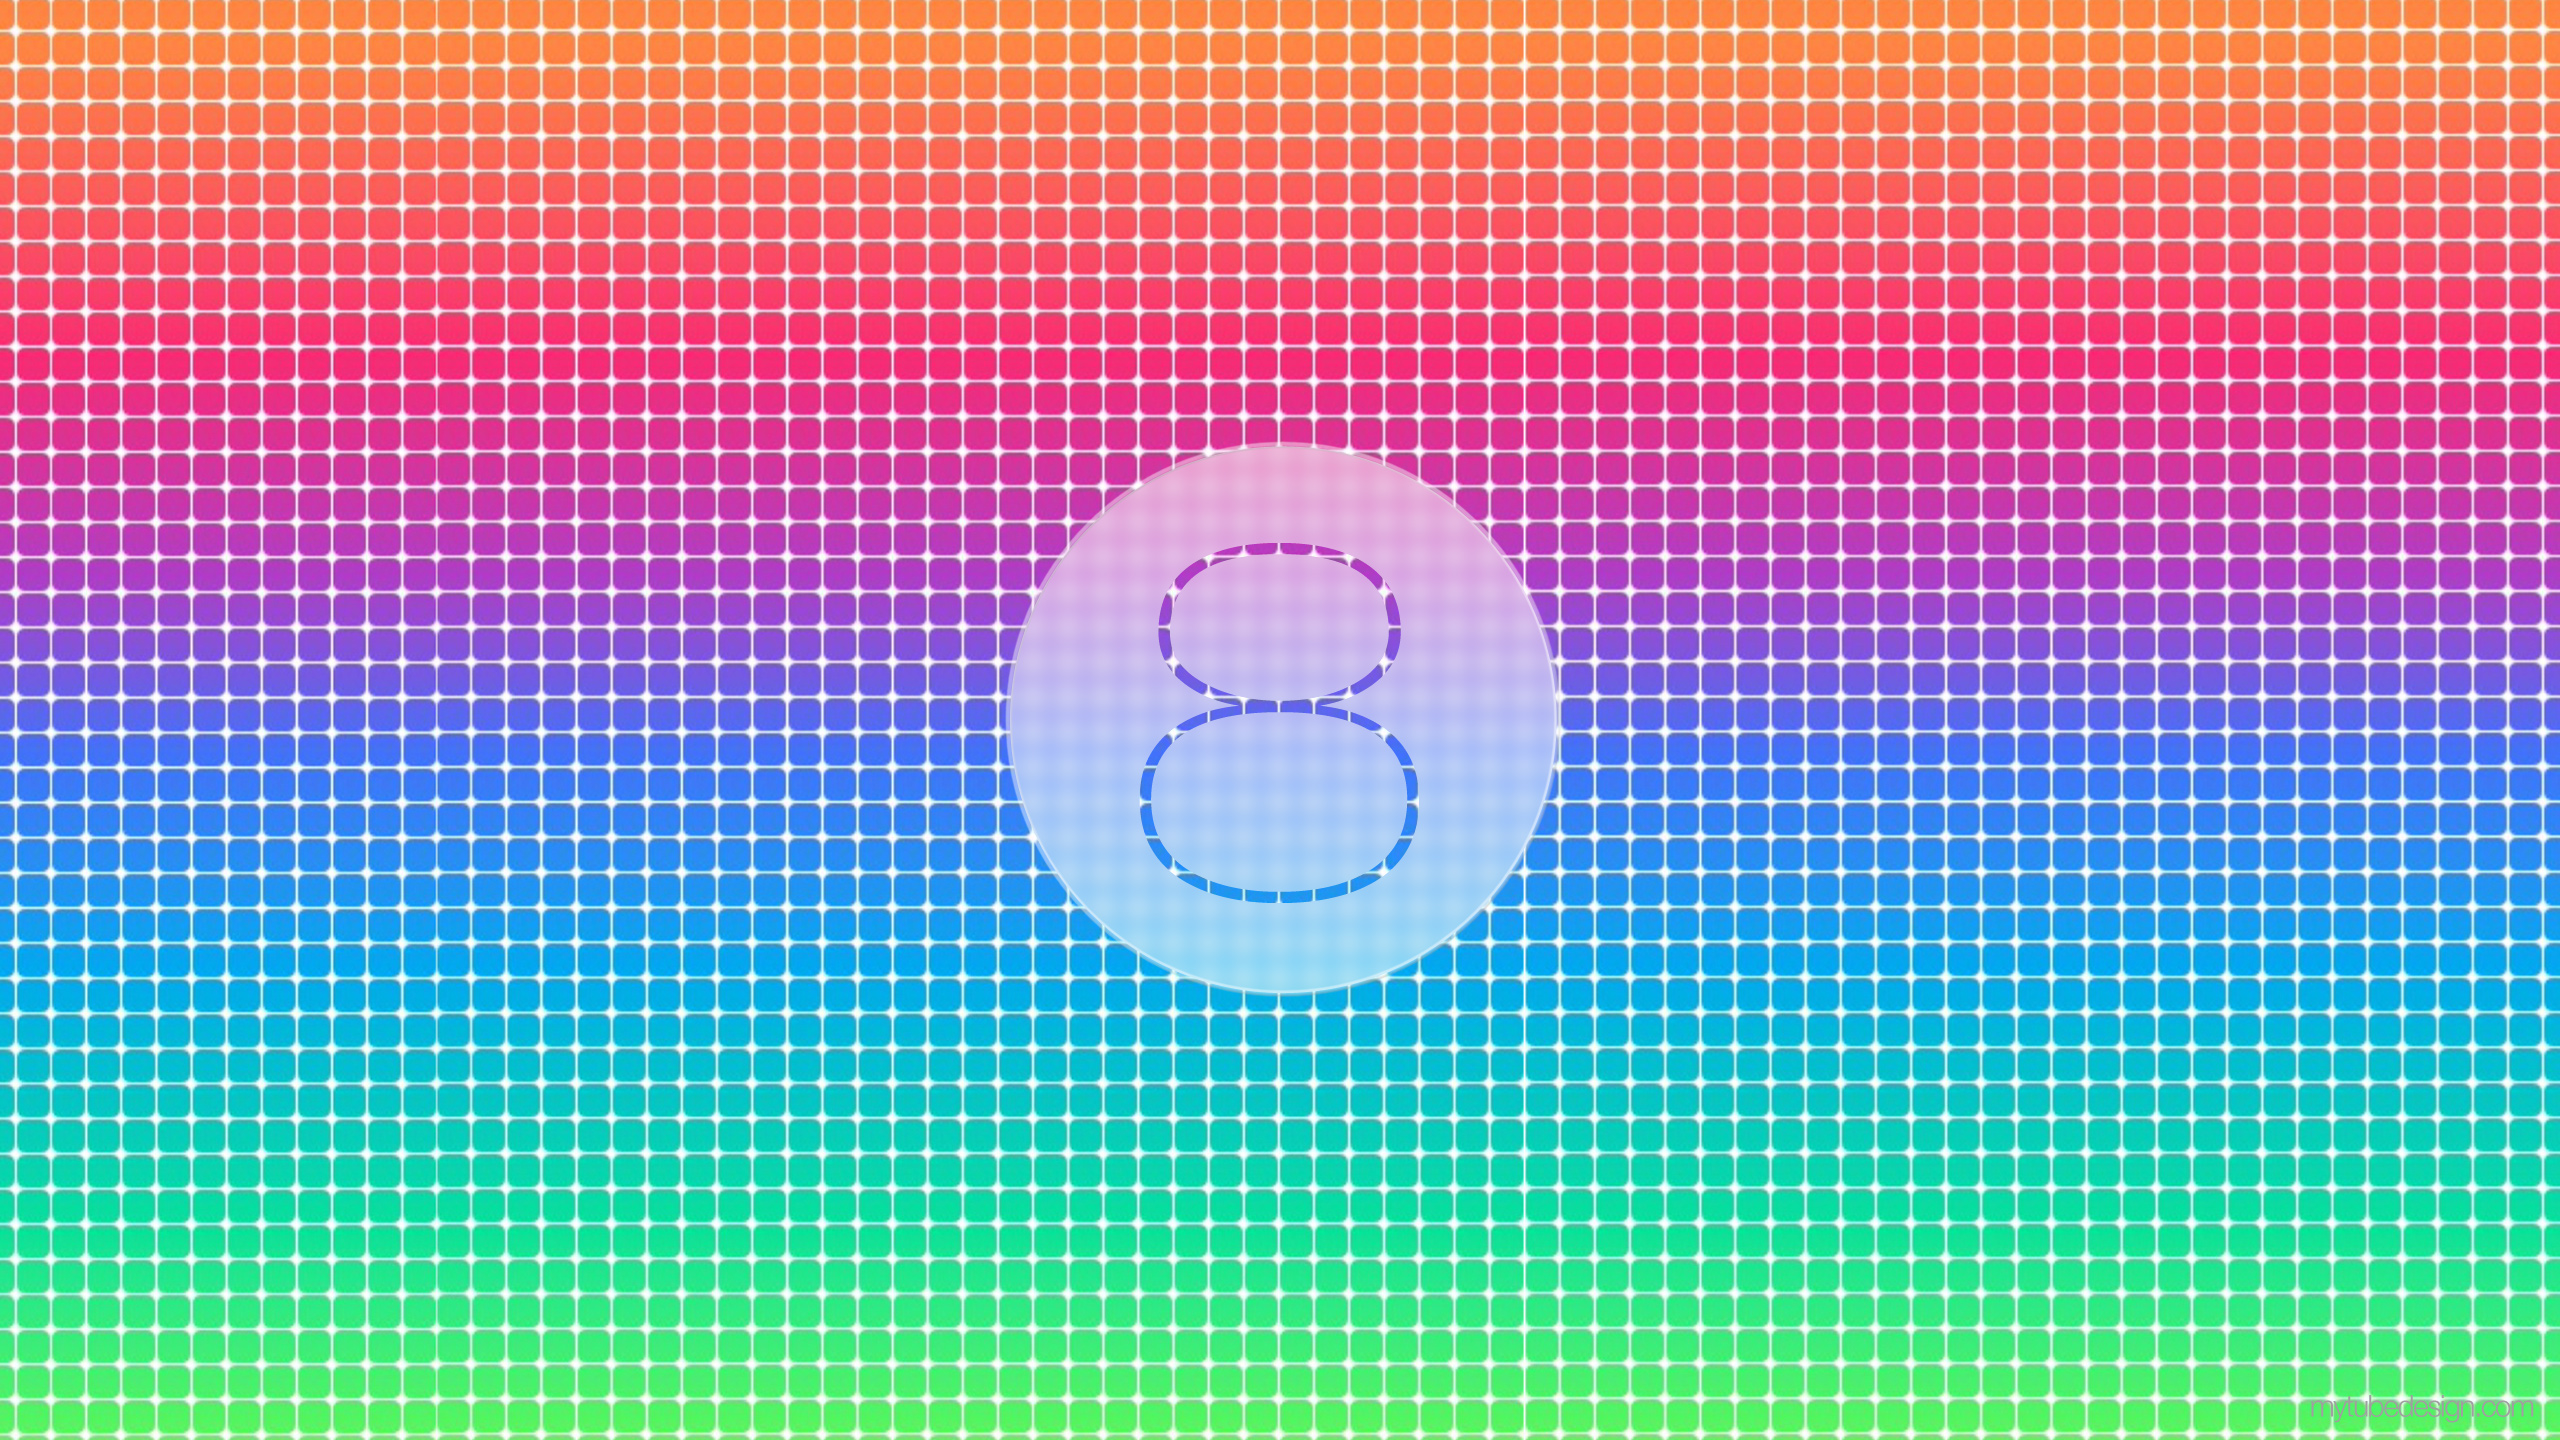 Videos: How to Use iOS 8 and all its New Features